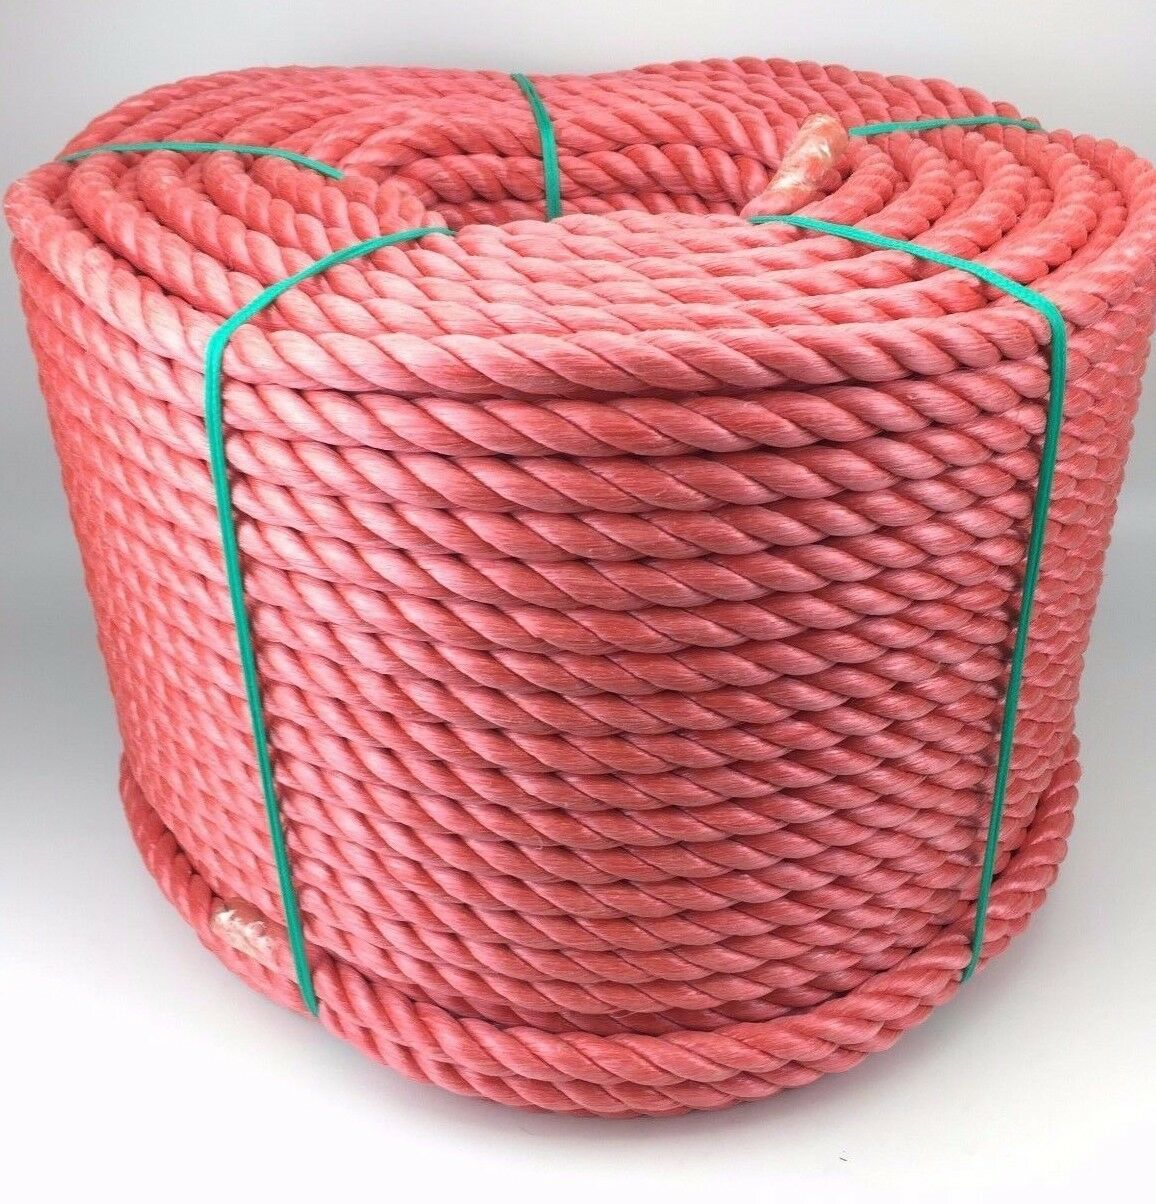 14mm Red Polypropylene Rope x 220m Coil, Red Poly Rope Coils, Polyrope